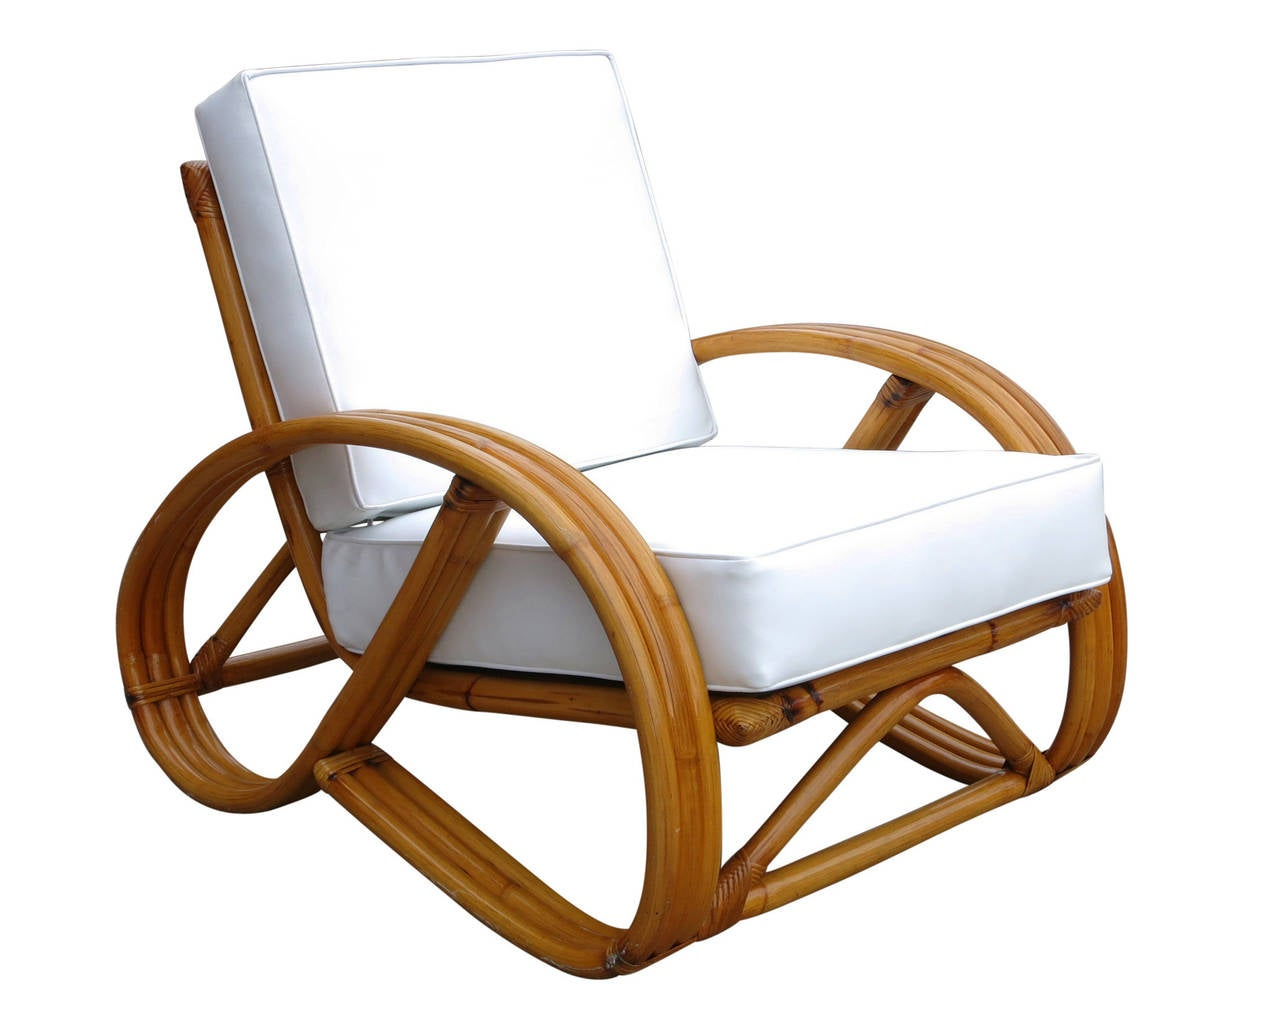 3 4 round pretzel rattan lounge chair with ottoman at 1stdibs. Black Bedroom Furniture Sets. Home Design Ideas